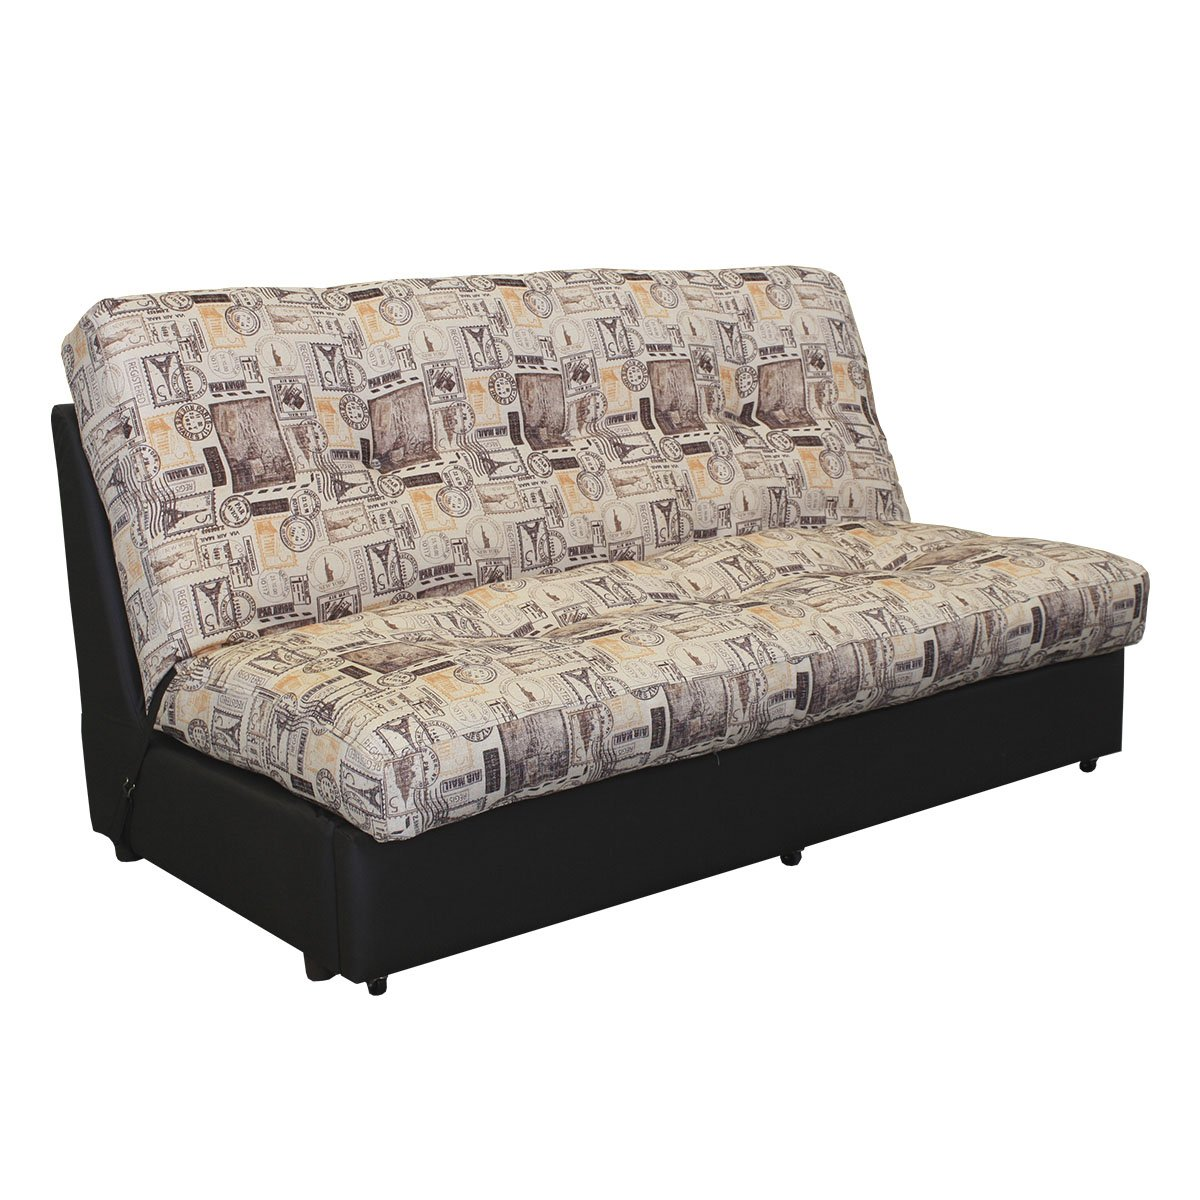 Sofa cama sofas camas sofa brownsvilleclaimhelp thesofa for Sofa cama con almacenaje